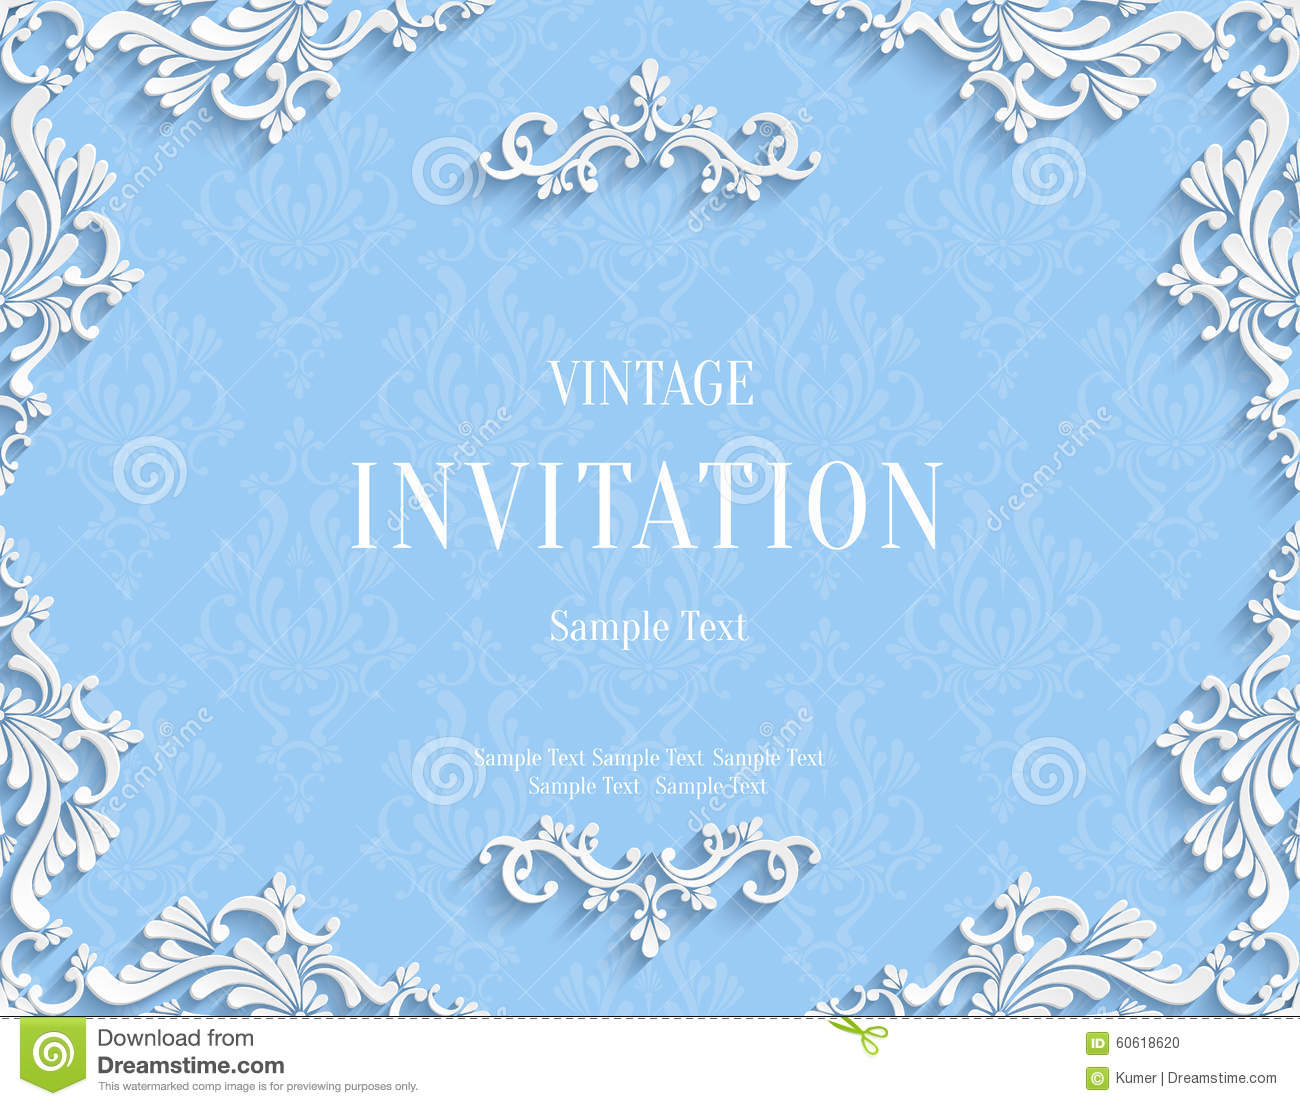 Vector Blue 3d Vintage Invitation Card With Floral Damask Pattern Stock Vector